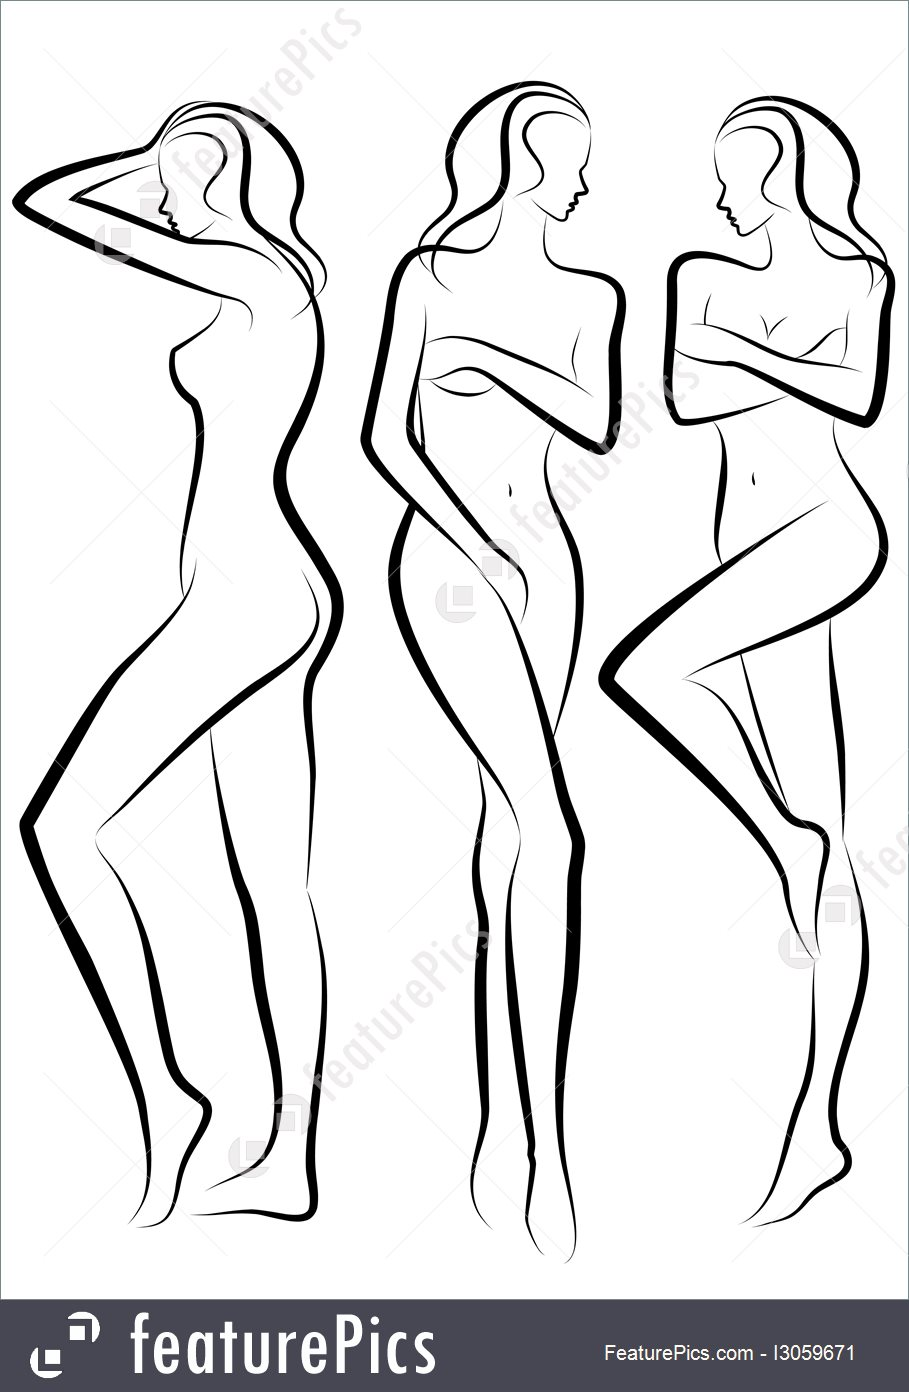 909x1392 Silhouettes And Outlines Woman Body, Vector